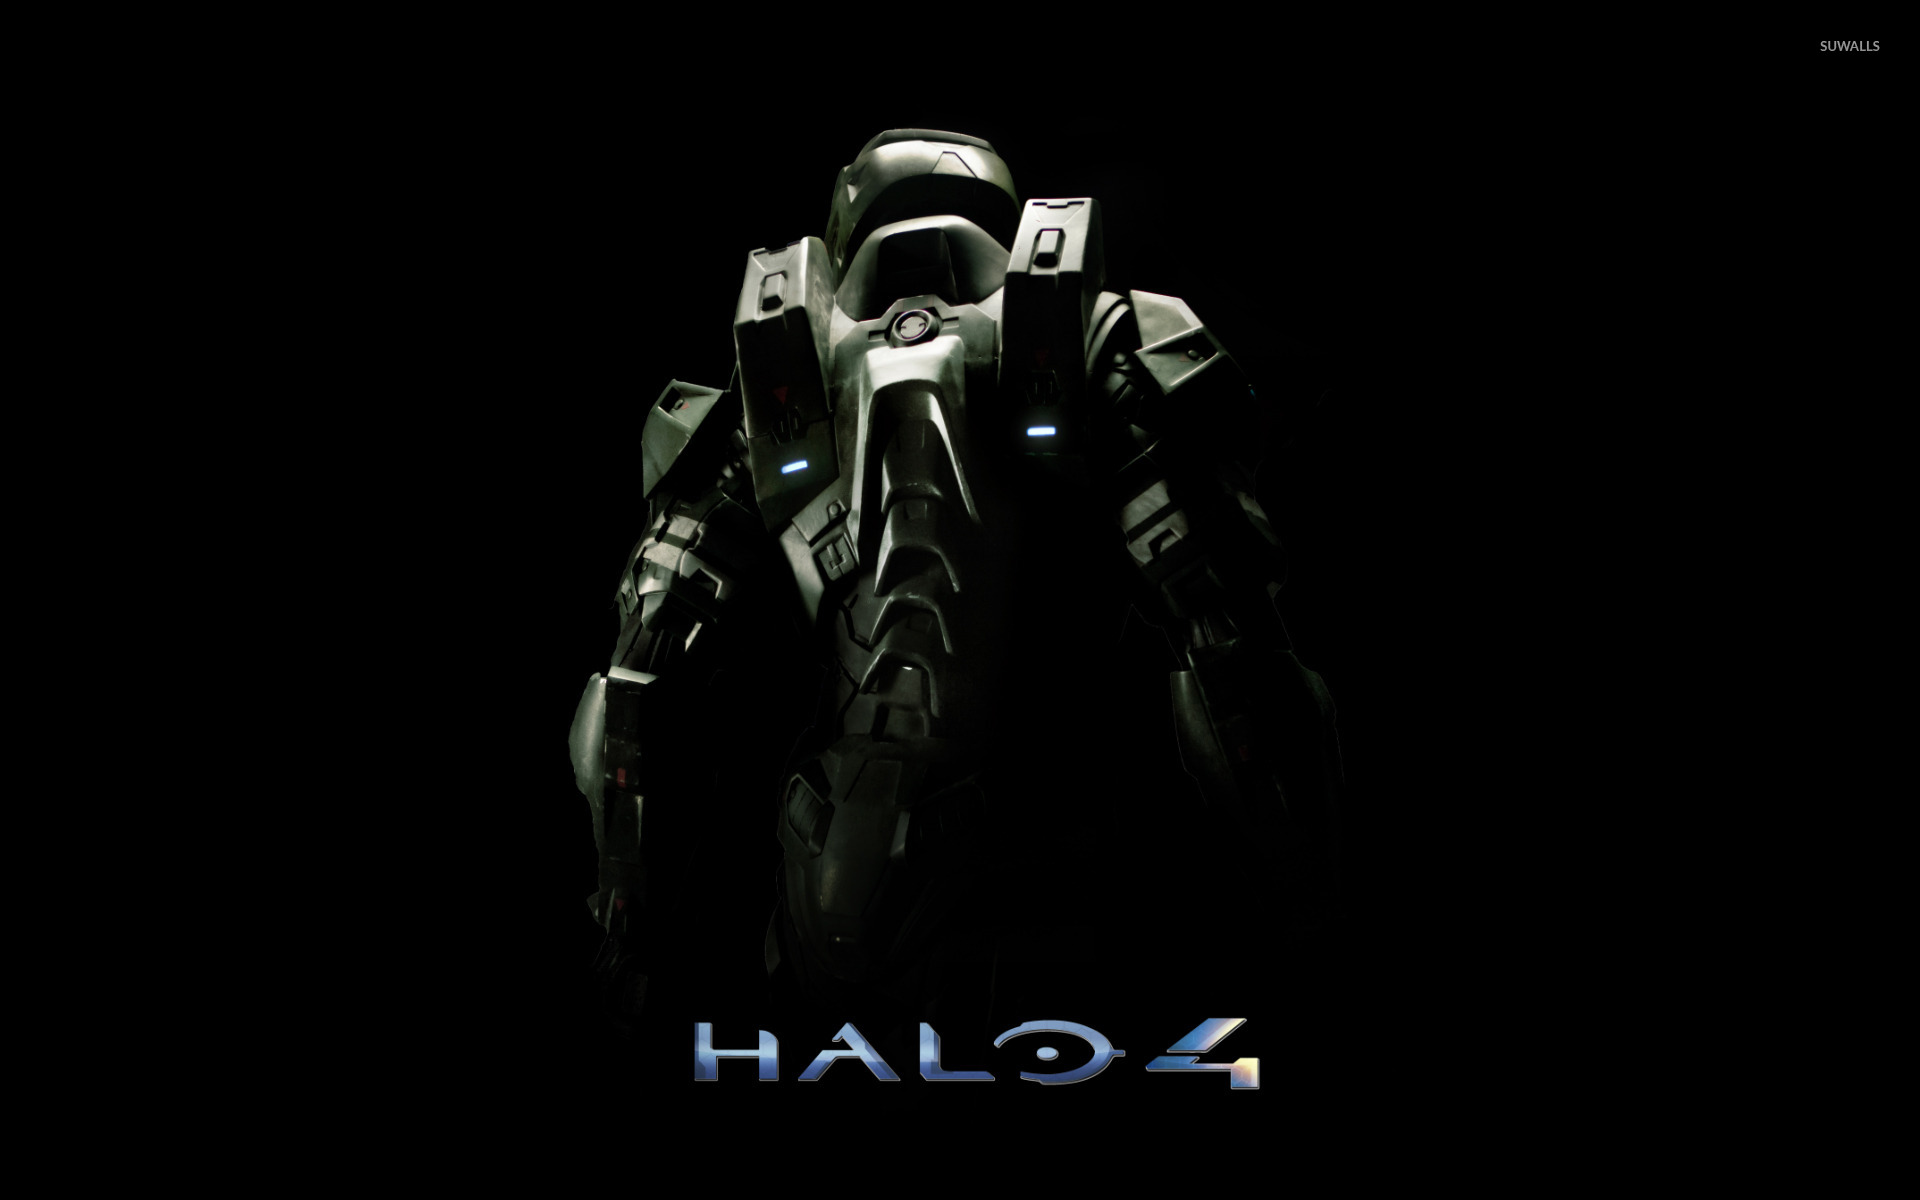 Halo 4 2 Wallpaper Game Wallpapers 15533